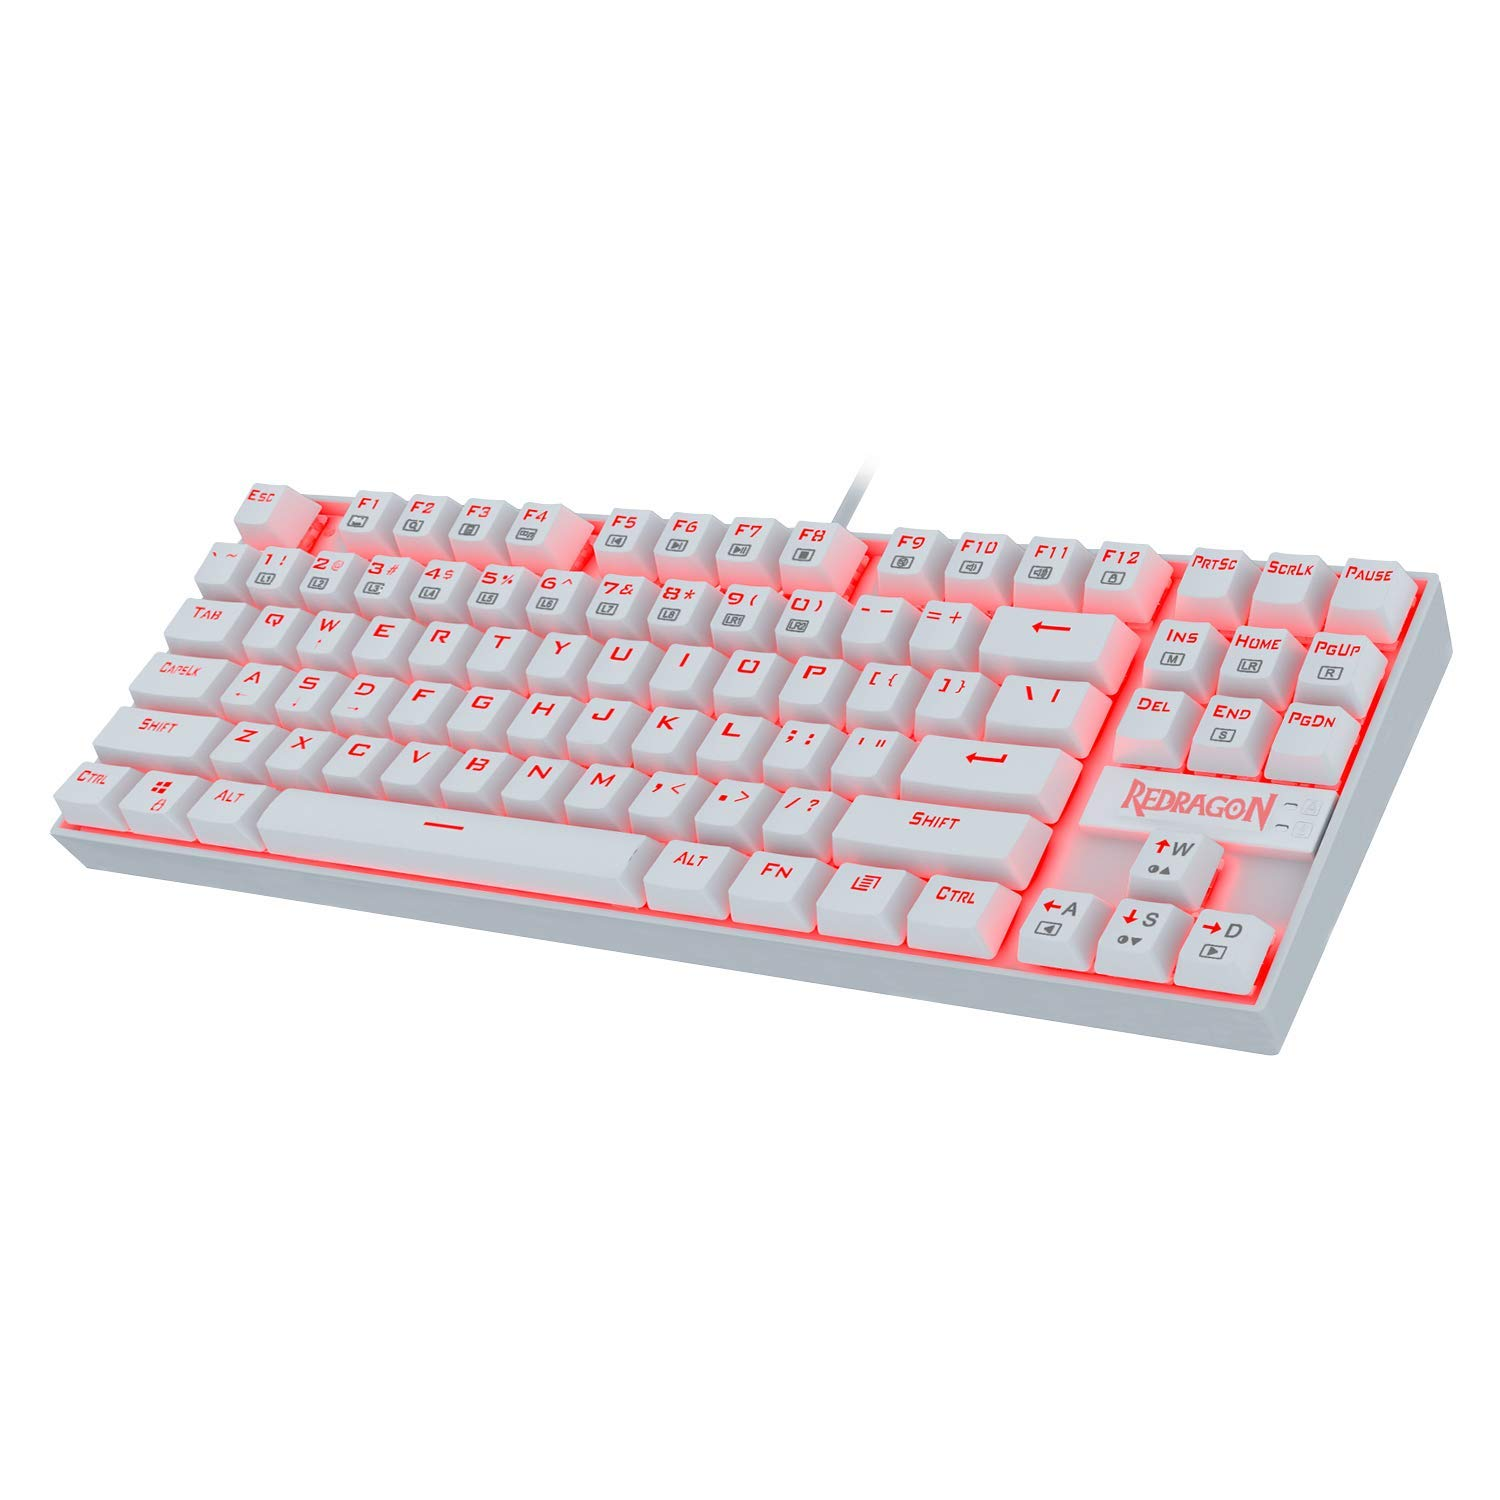 Redragon K552 Mechanical Gaming Keyboard 60% Compact 87 Key Kumara Wired Cherry MX Blue Switches Equivalent for Windows PC Gamers (RED Backlit White)